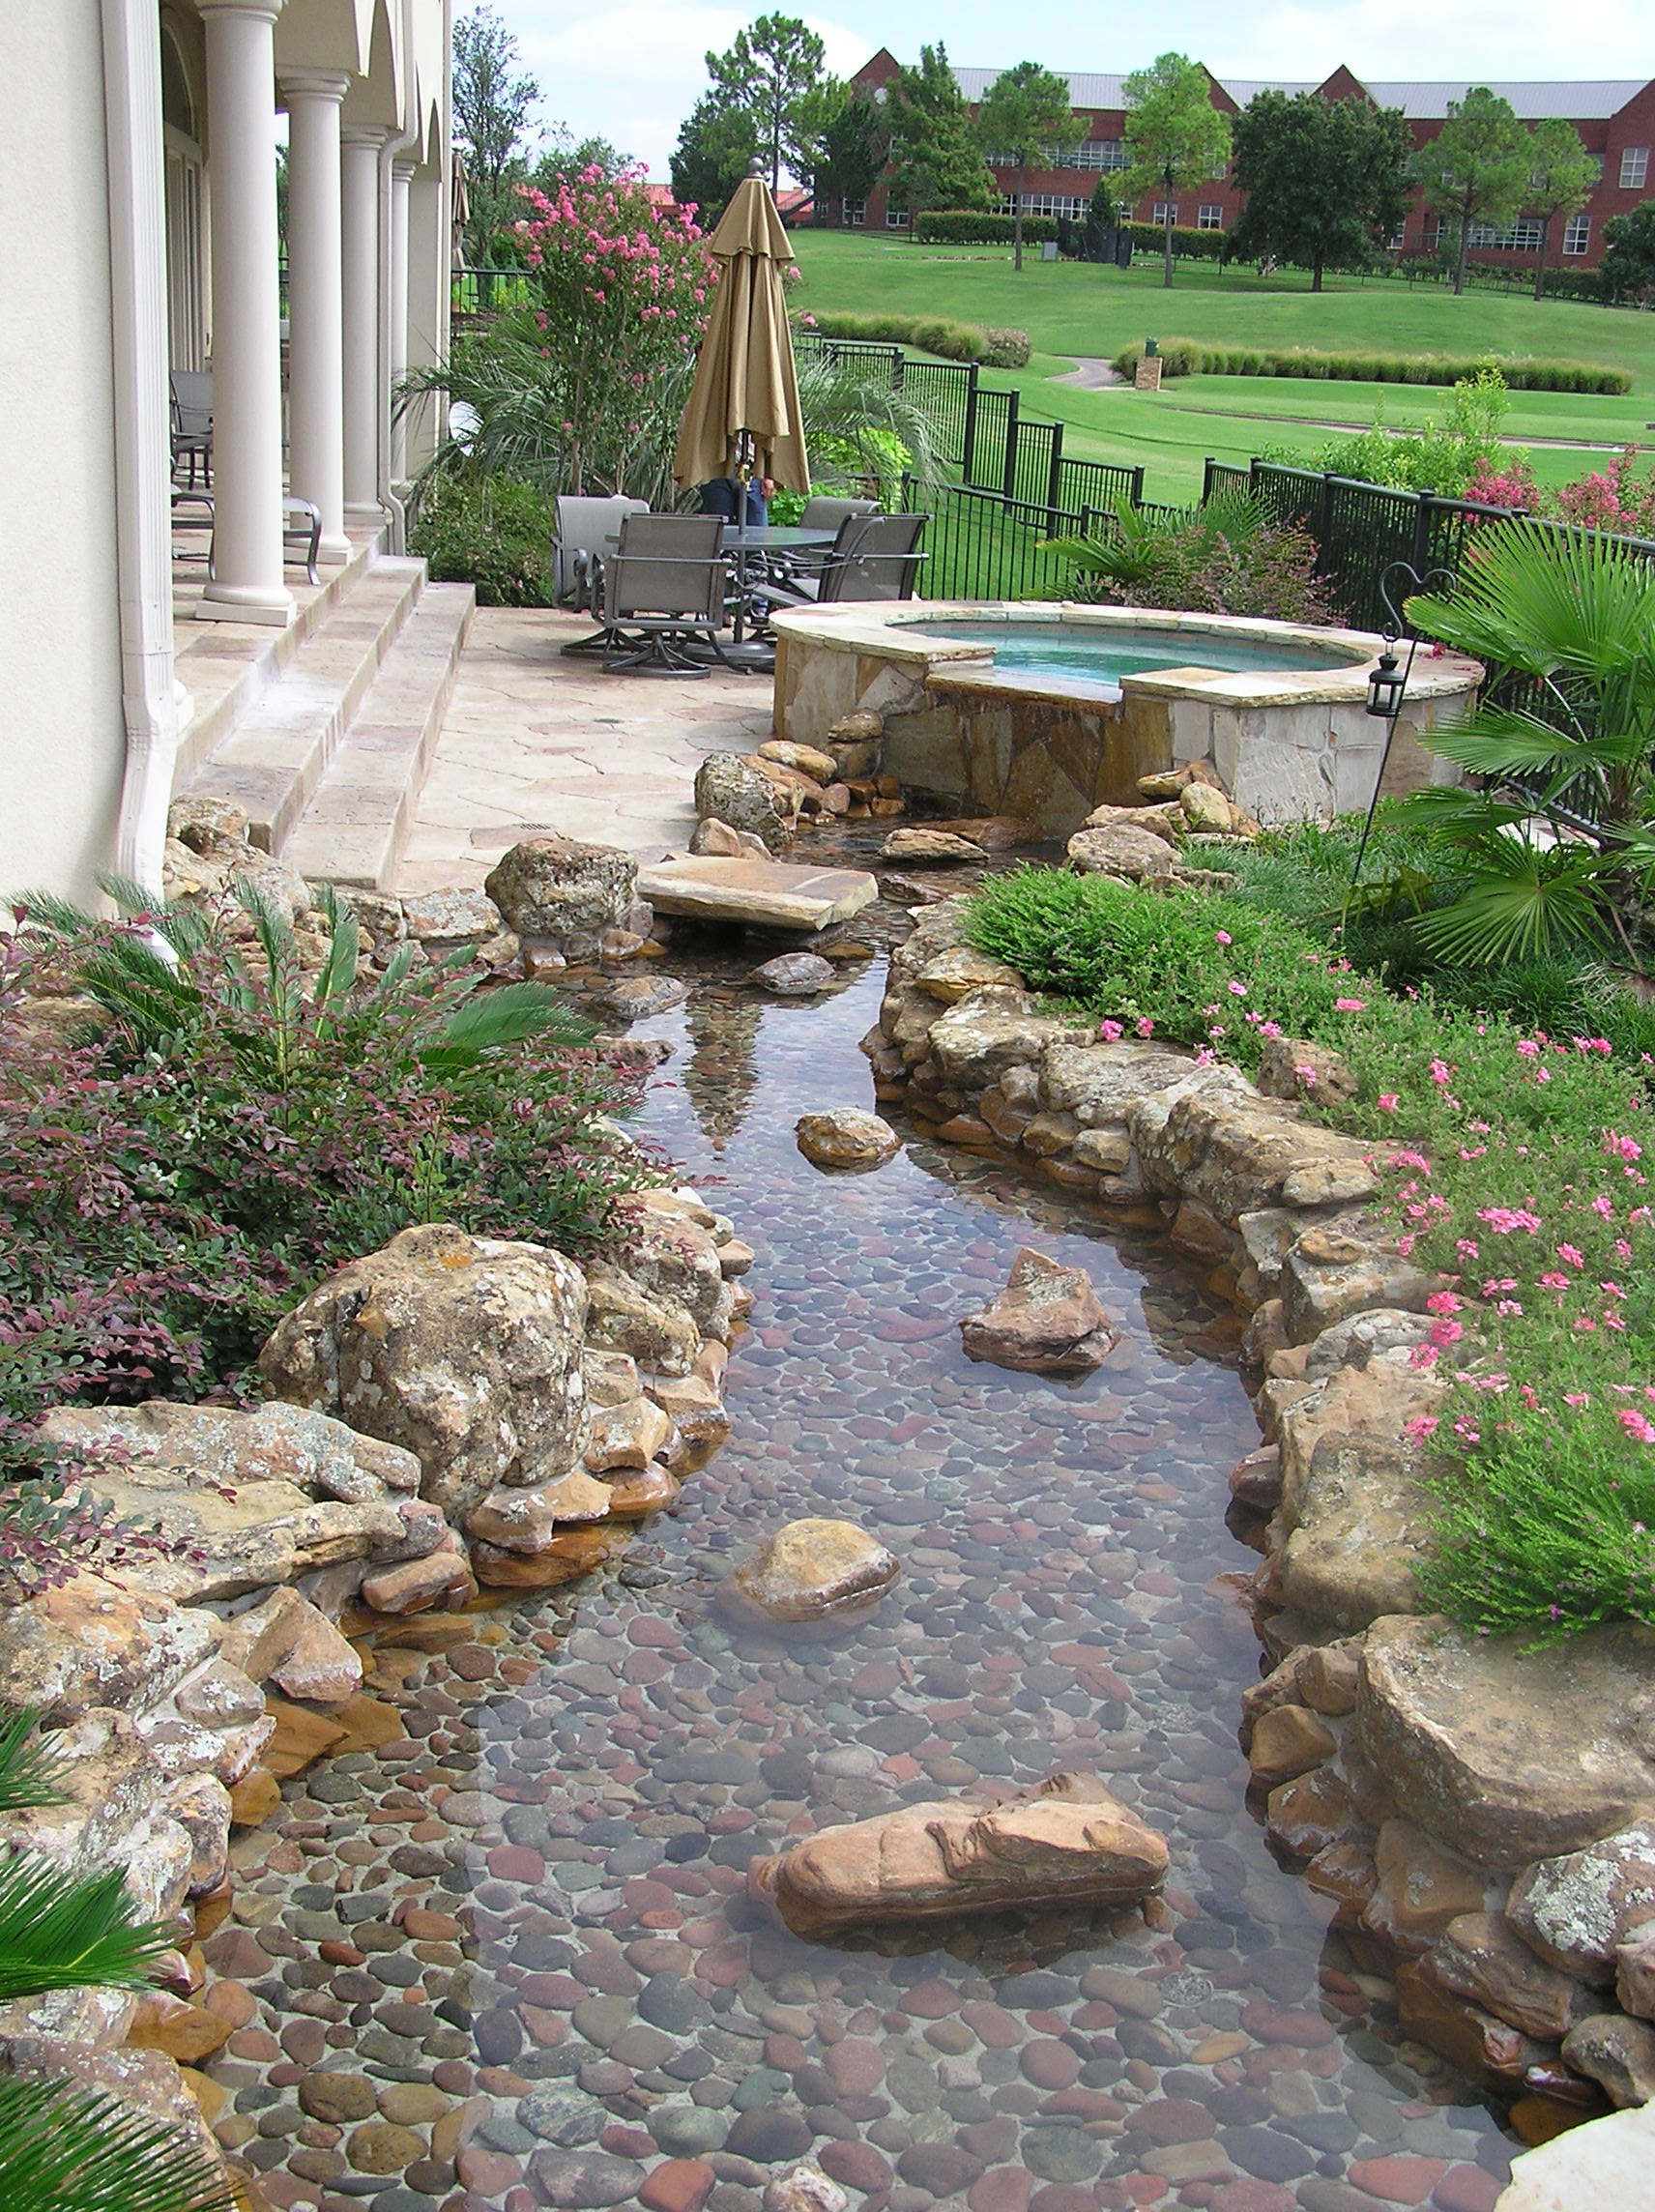 Landscape River Design Landscape River Construction By